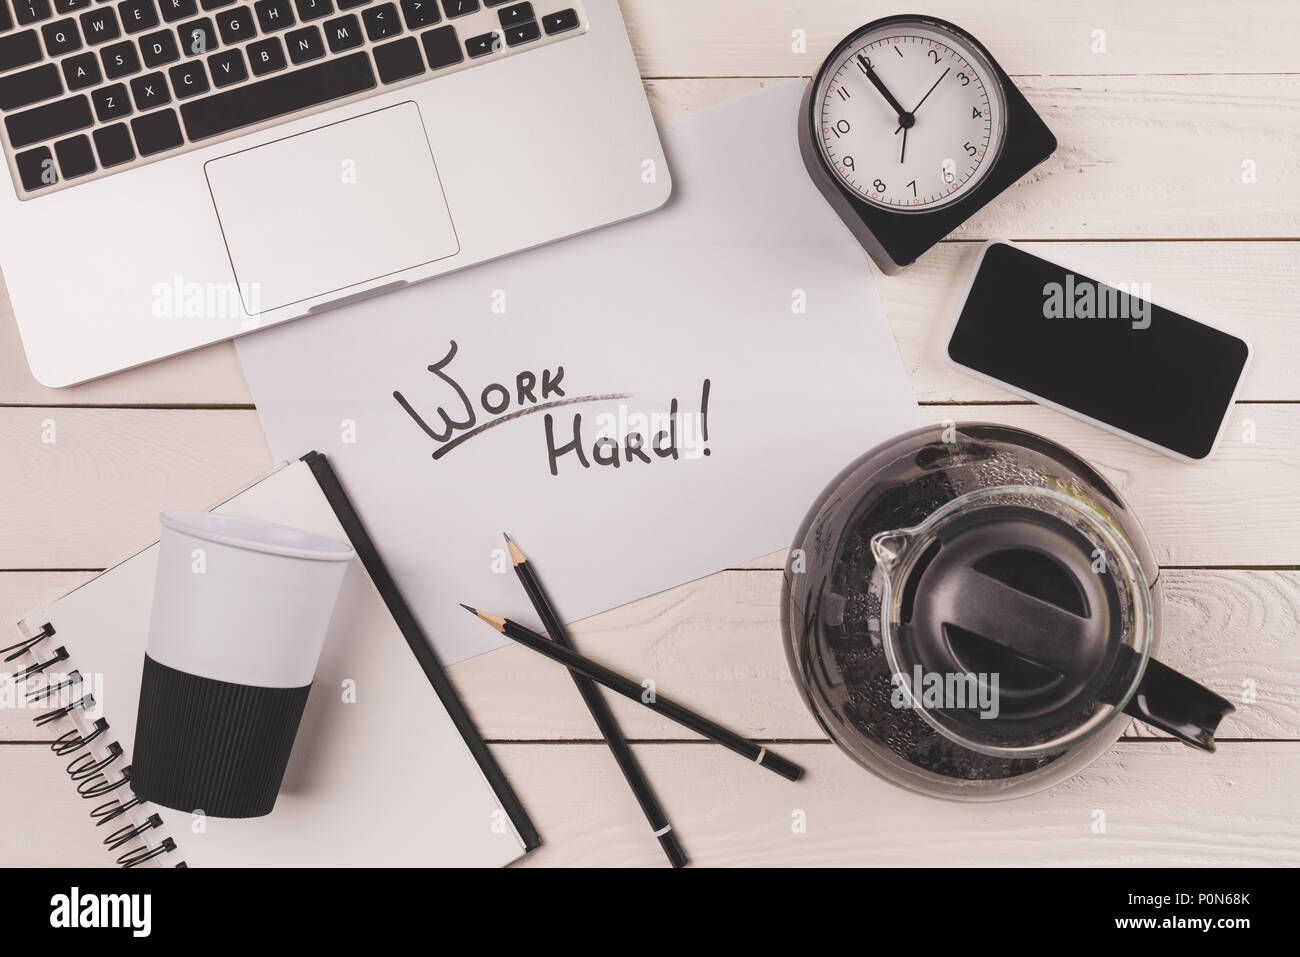 laptop, coffee pot, paper cup, clock, smartphone and inscription work hard at workplace - Stock Image